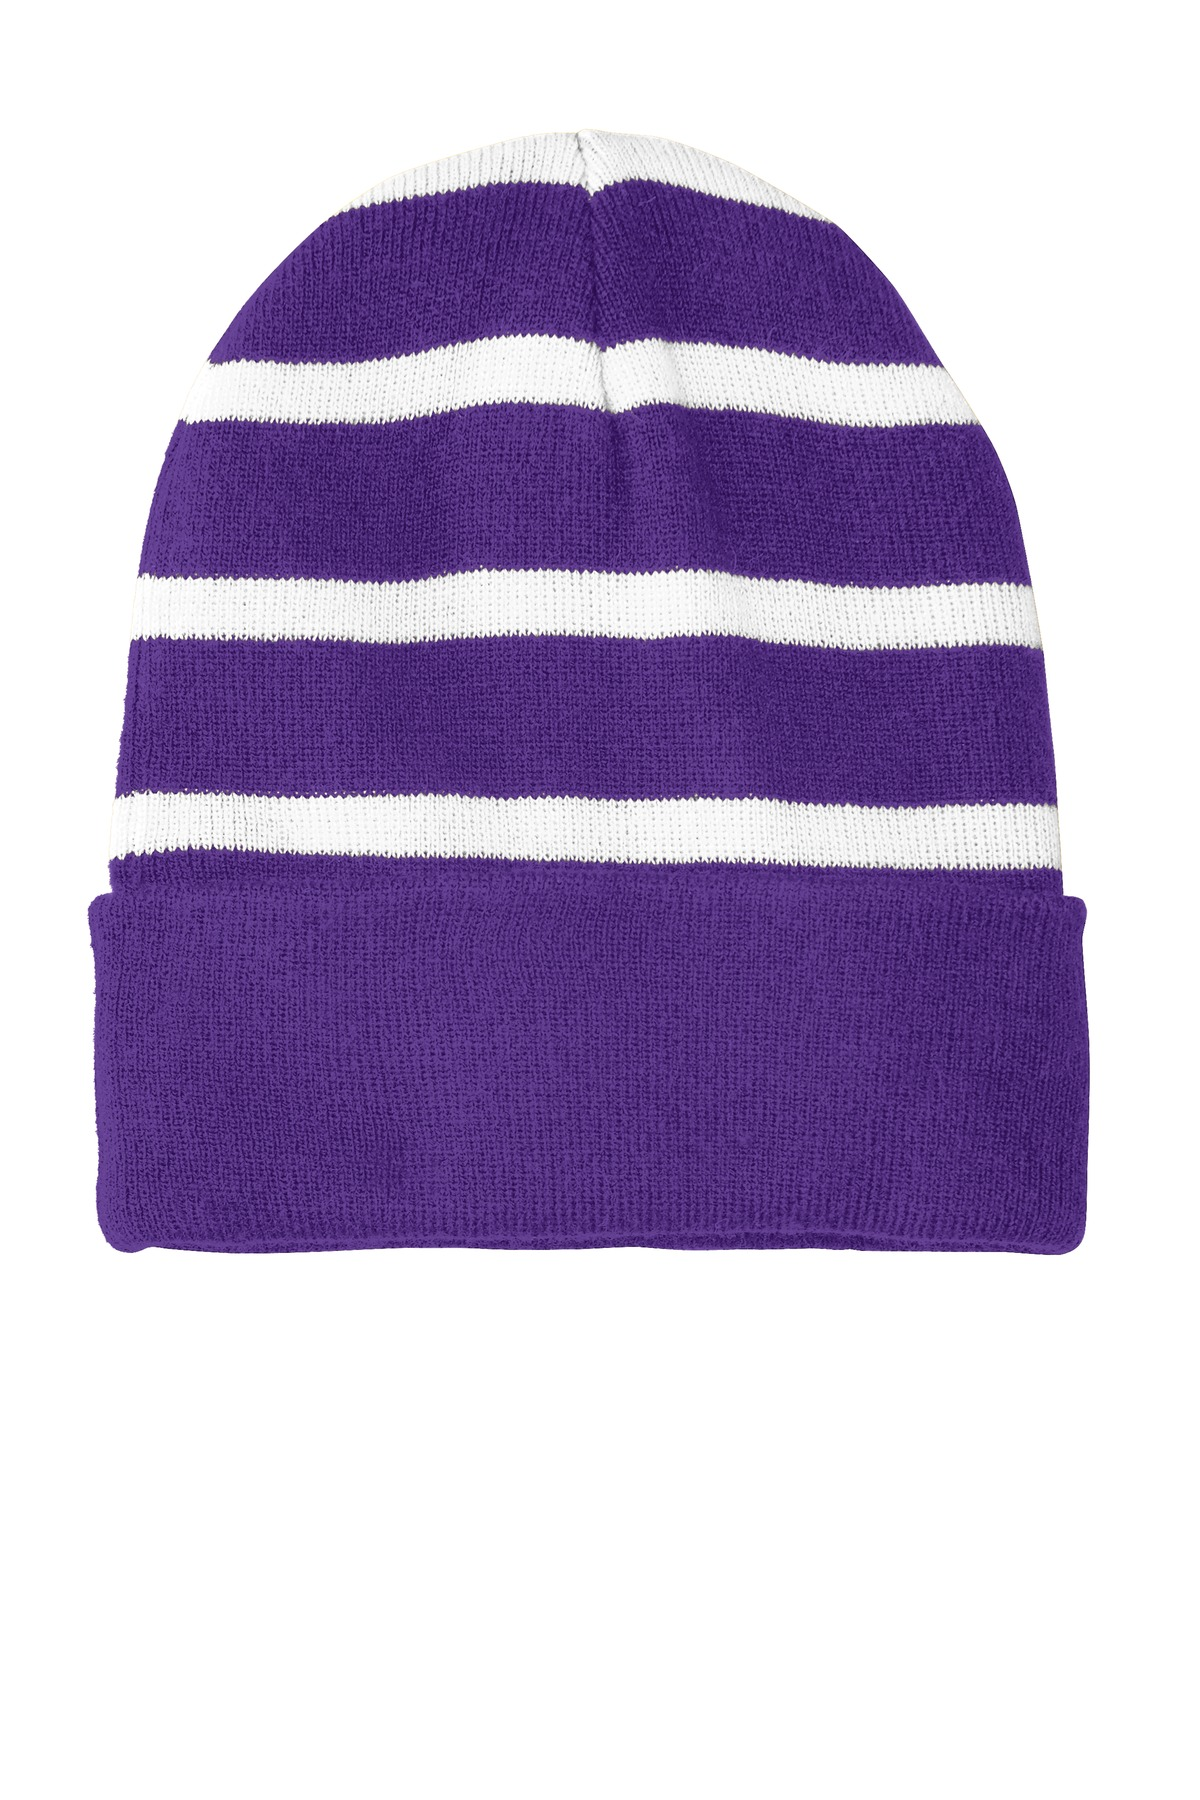 Sport-Tek ®  Striped Beanie with Solid Band. STC31 - Purple/ White